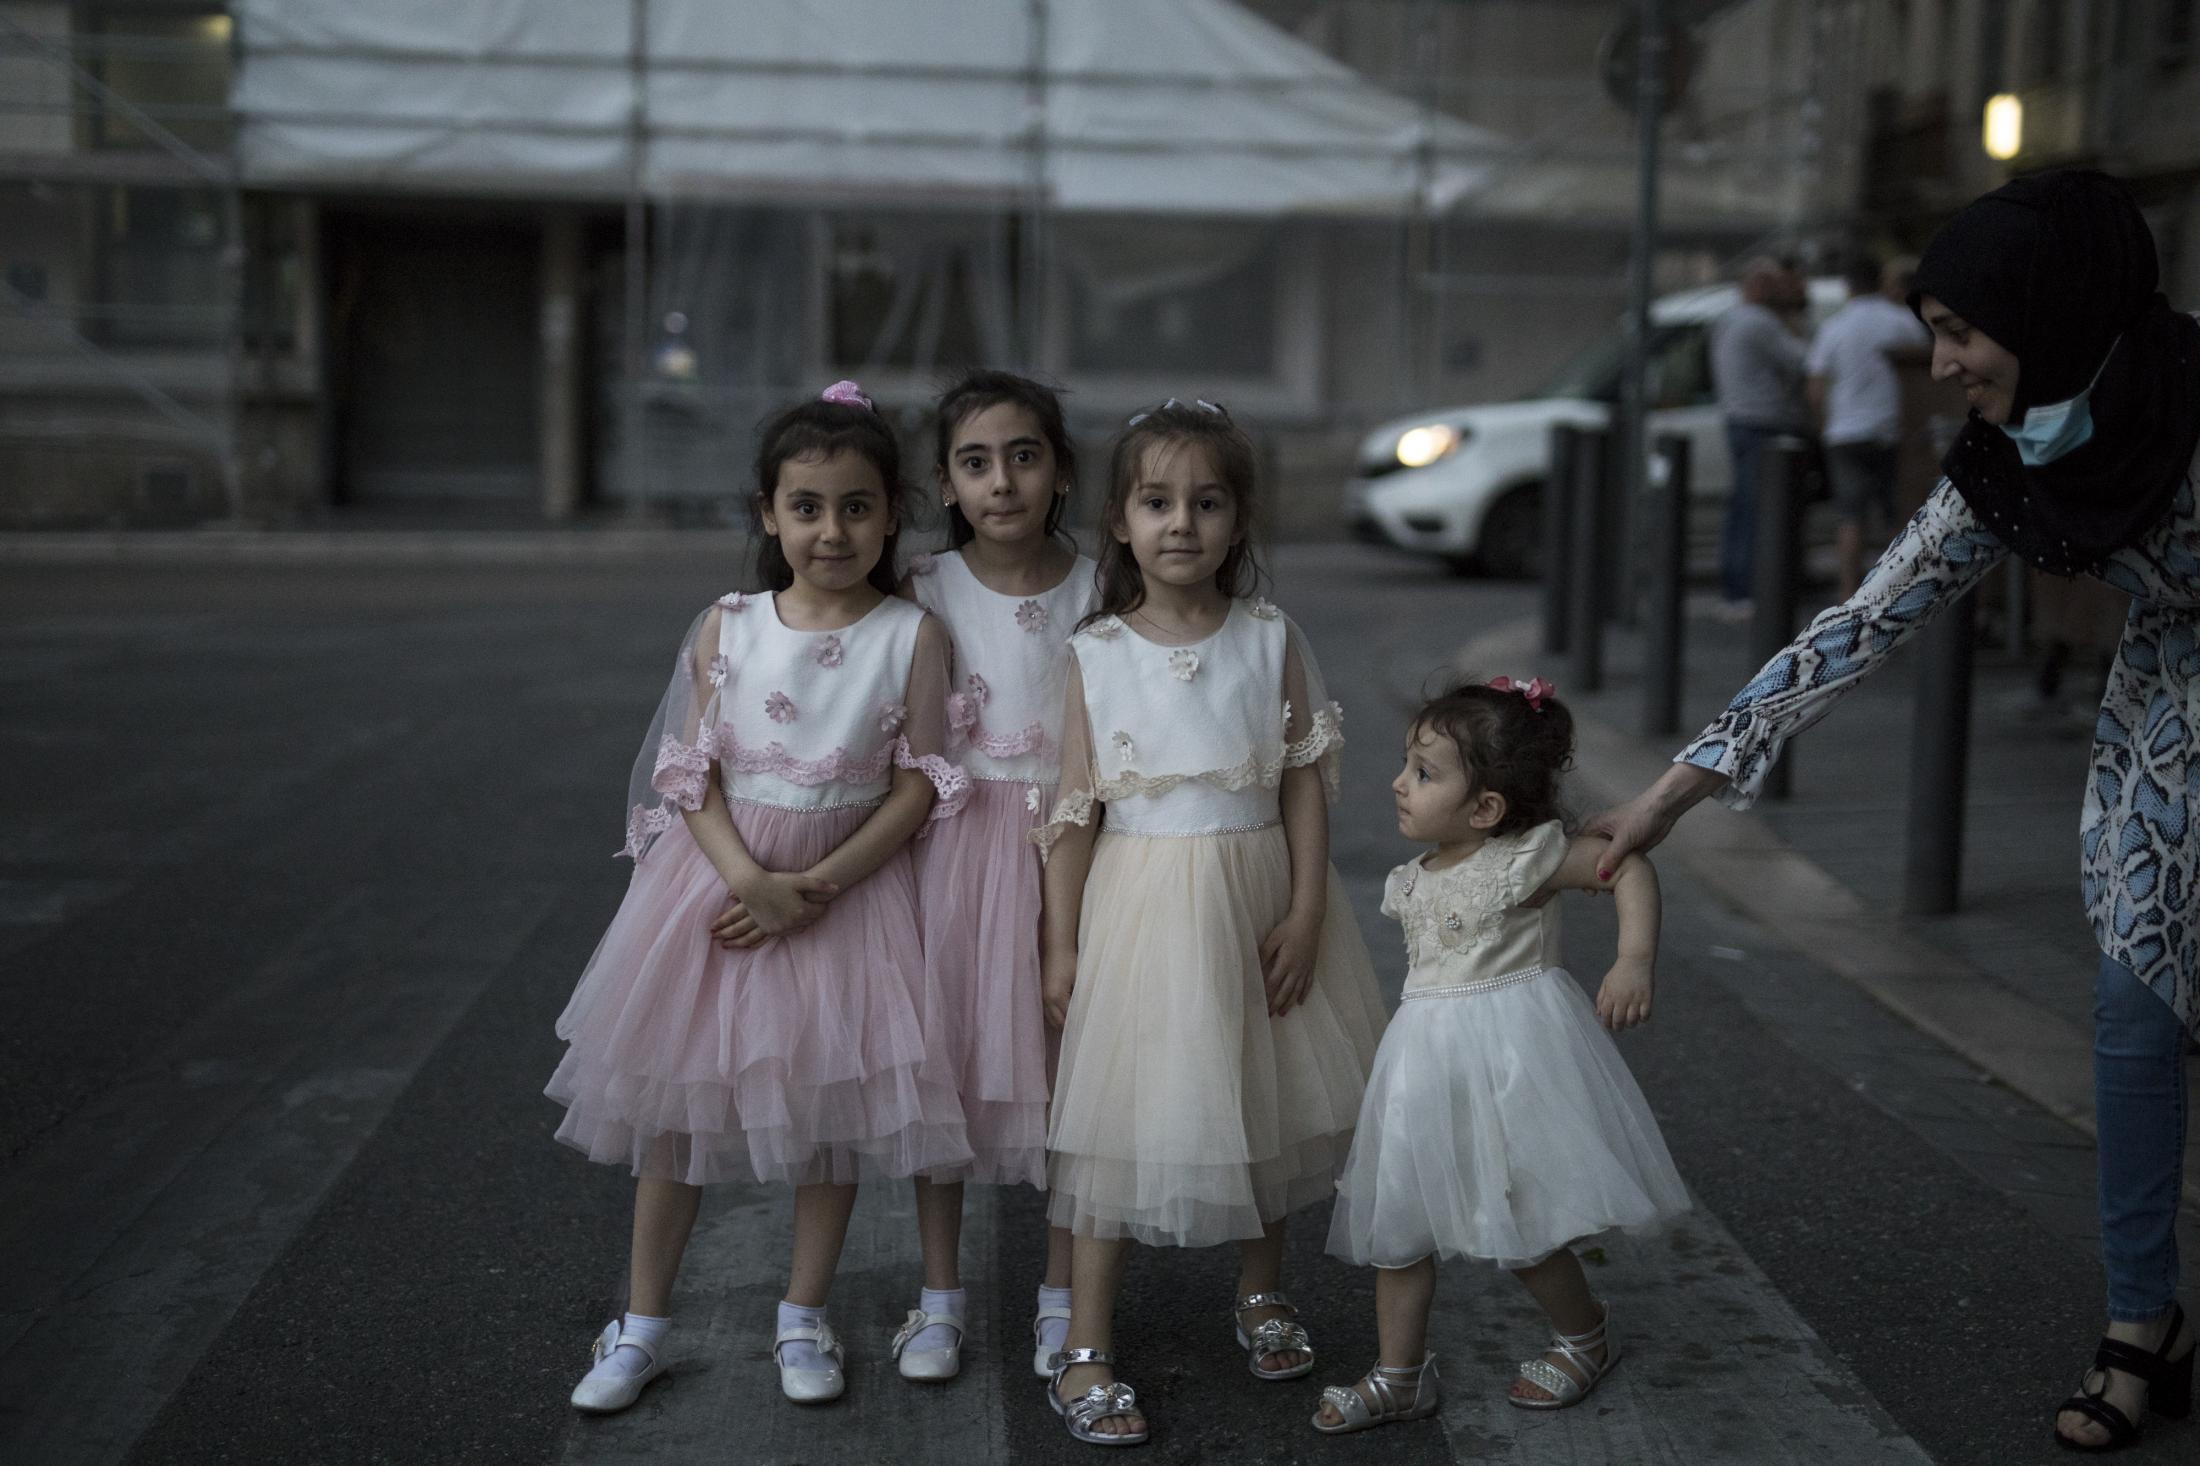 A mother poses her children wearing matching dresses in the street during an evening walk in Marseille, southern France, Tuesday, May 26, 2020 as France gradually lifts its COVID-19 lockdown. (AP Photo/Daniel Cole)